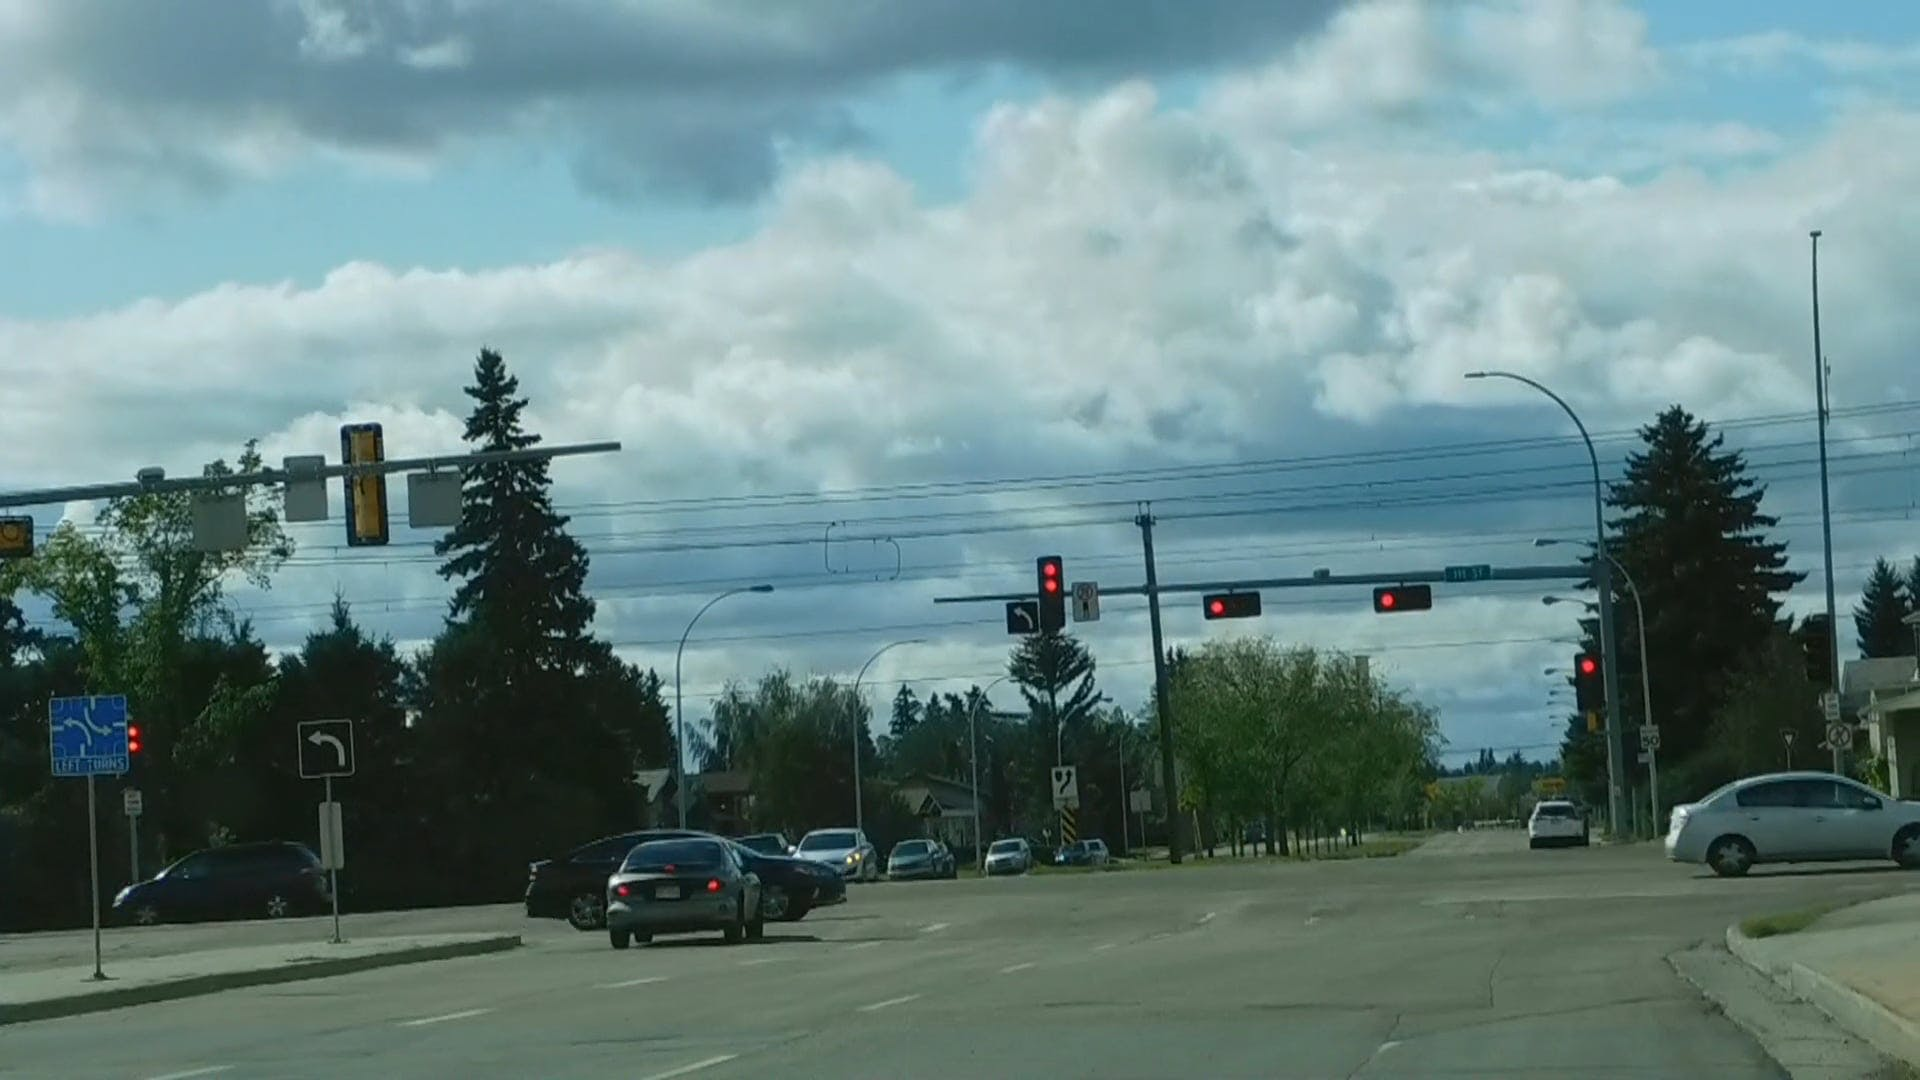 People Stopping At The Stop Light